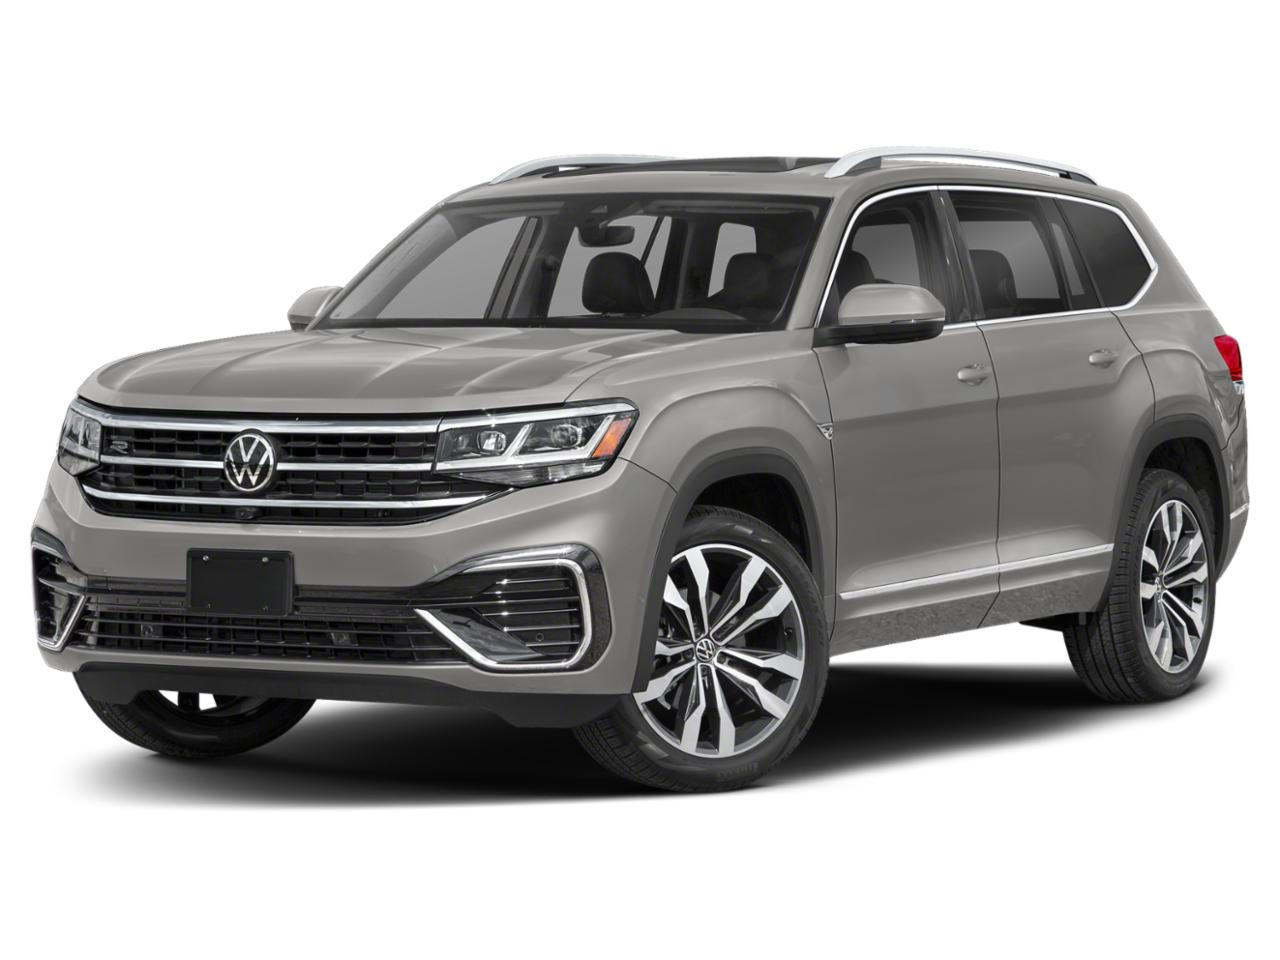 2021 Volkswagen Atlas Vehicle Photo in Oshkosh, WI 54904